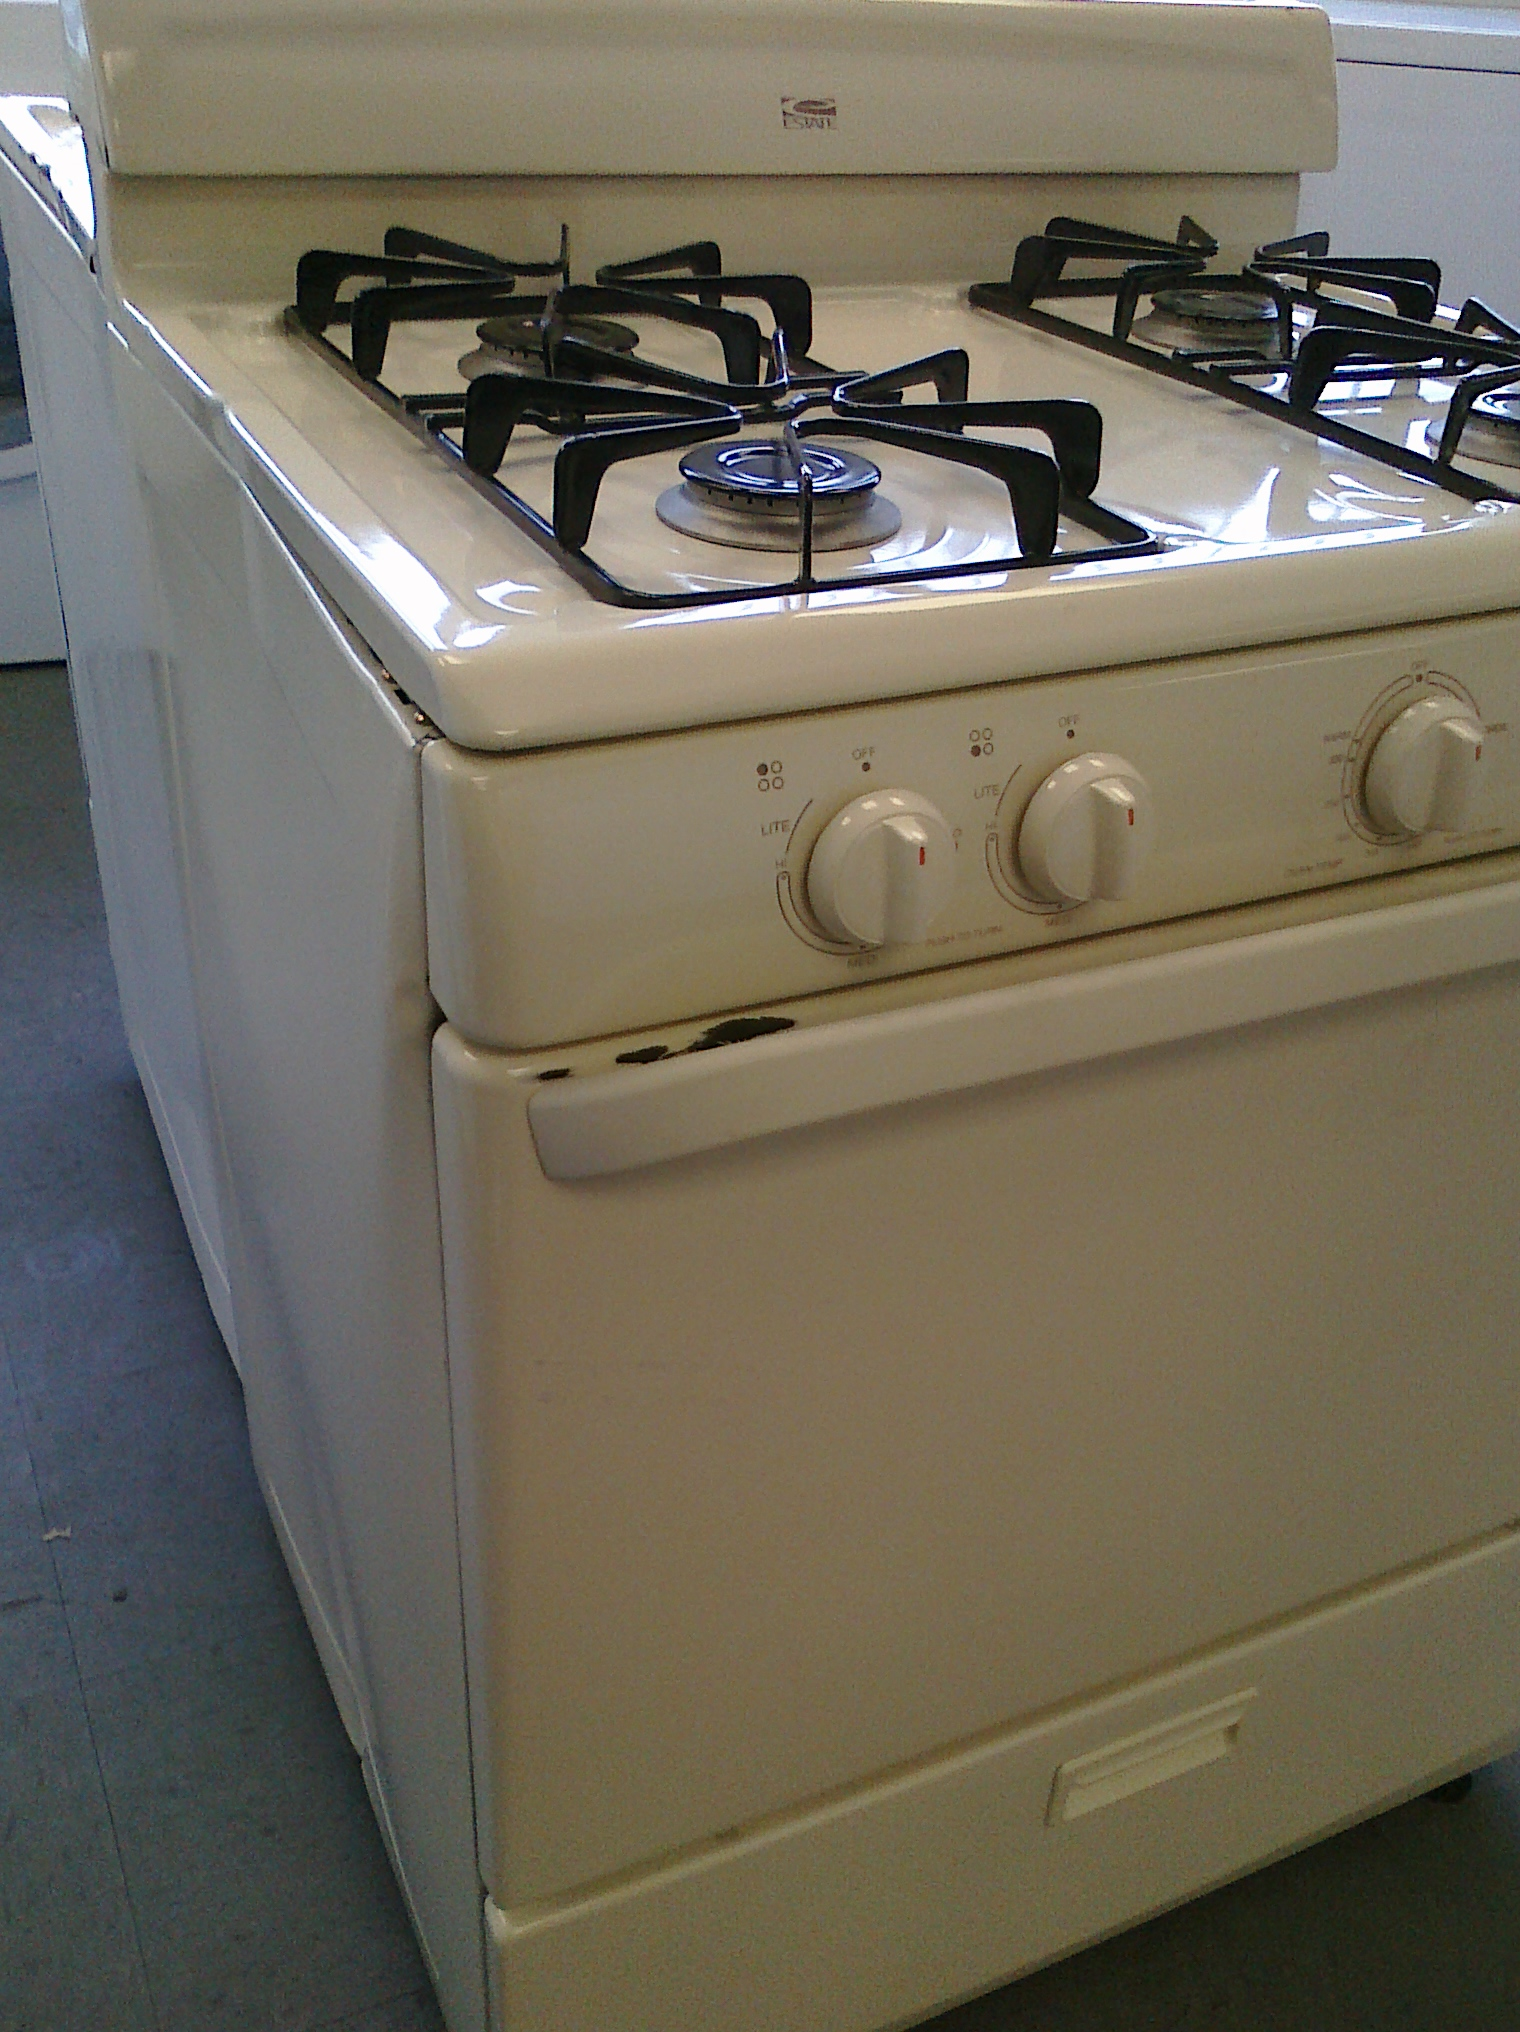 (8) Whirlpool Estate TGP305TT 30″ Gas Range w/ Sealed-Burners, Bisque